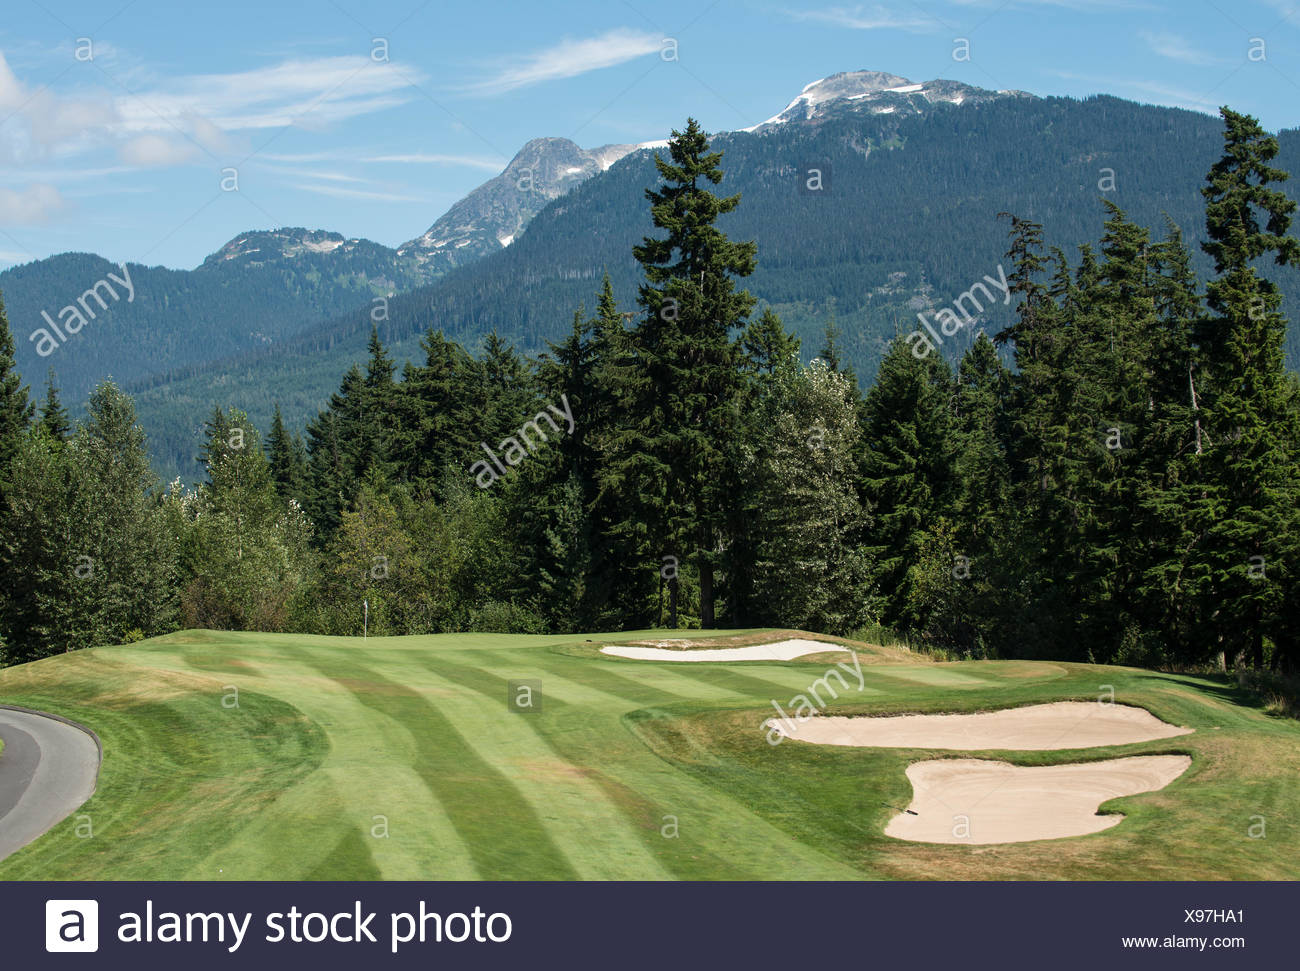 Chateau Whistler Golf Club, Whistler, British Columbia, Canadá Foto de stock